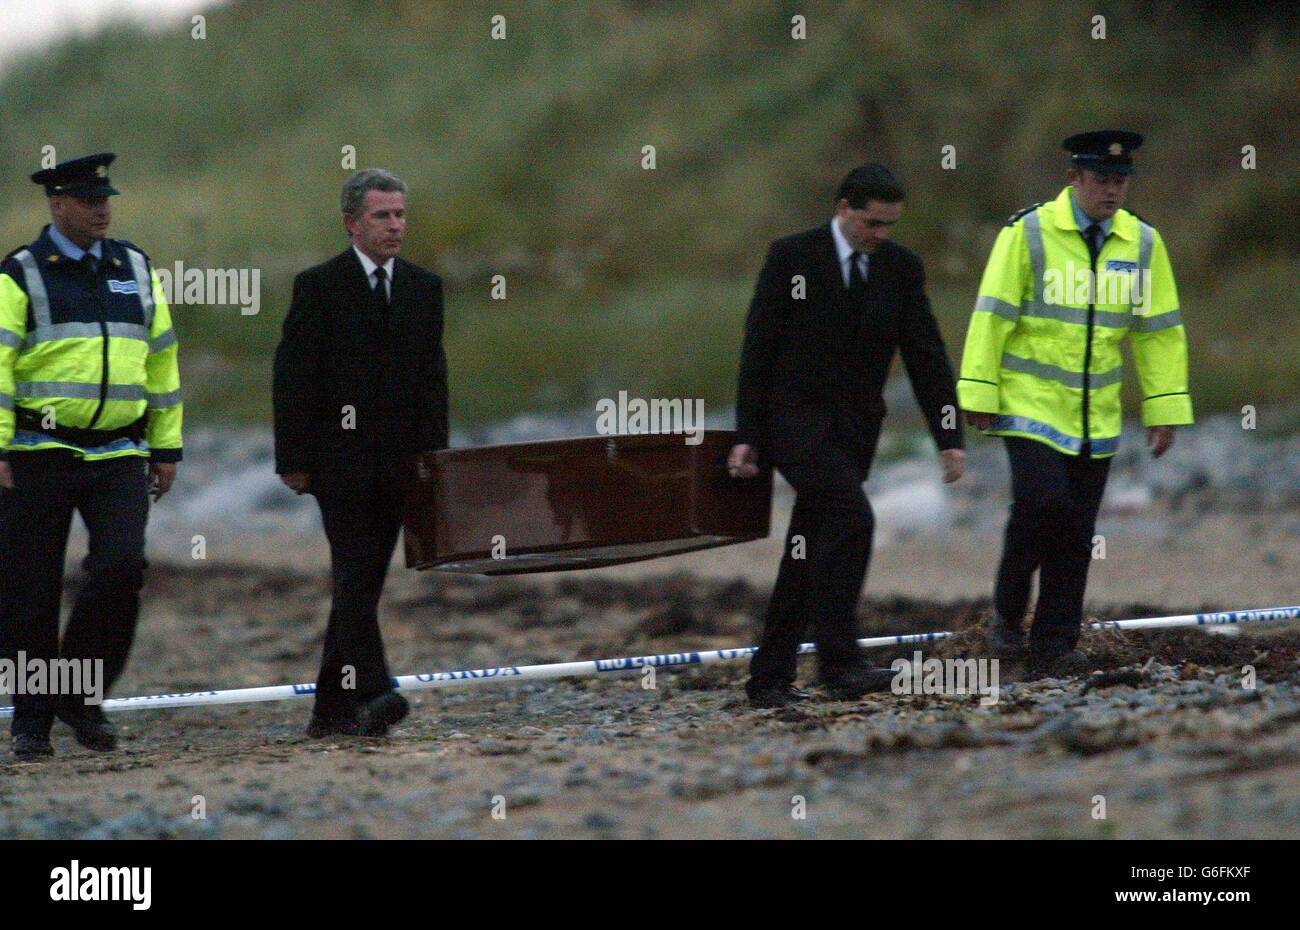 Search for body of IRA victim McConville - Stock Image